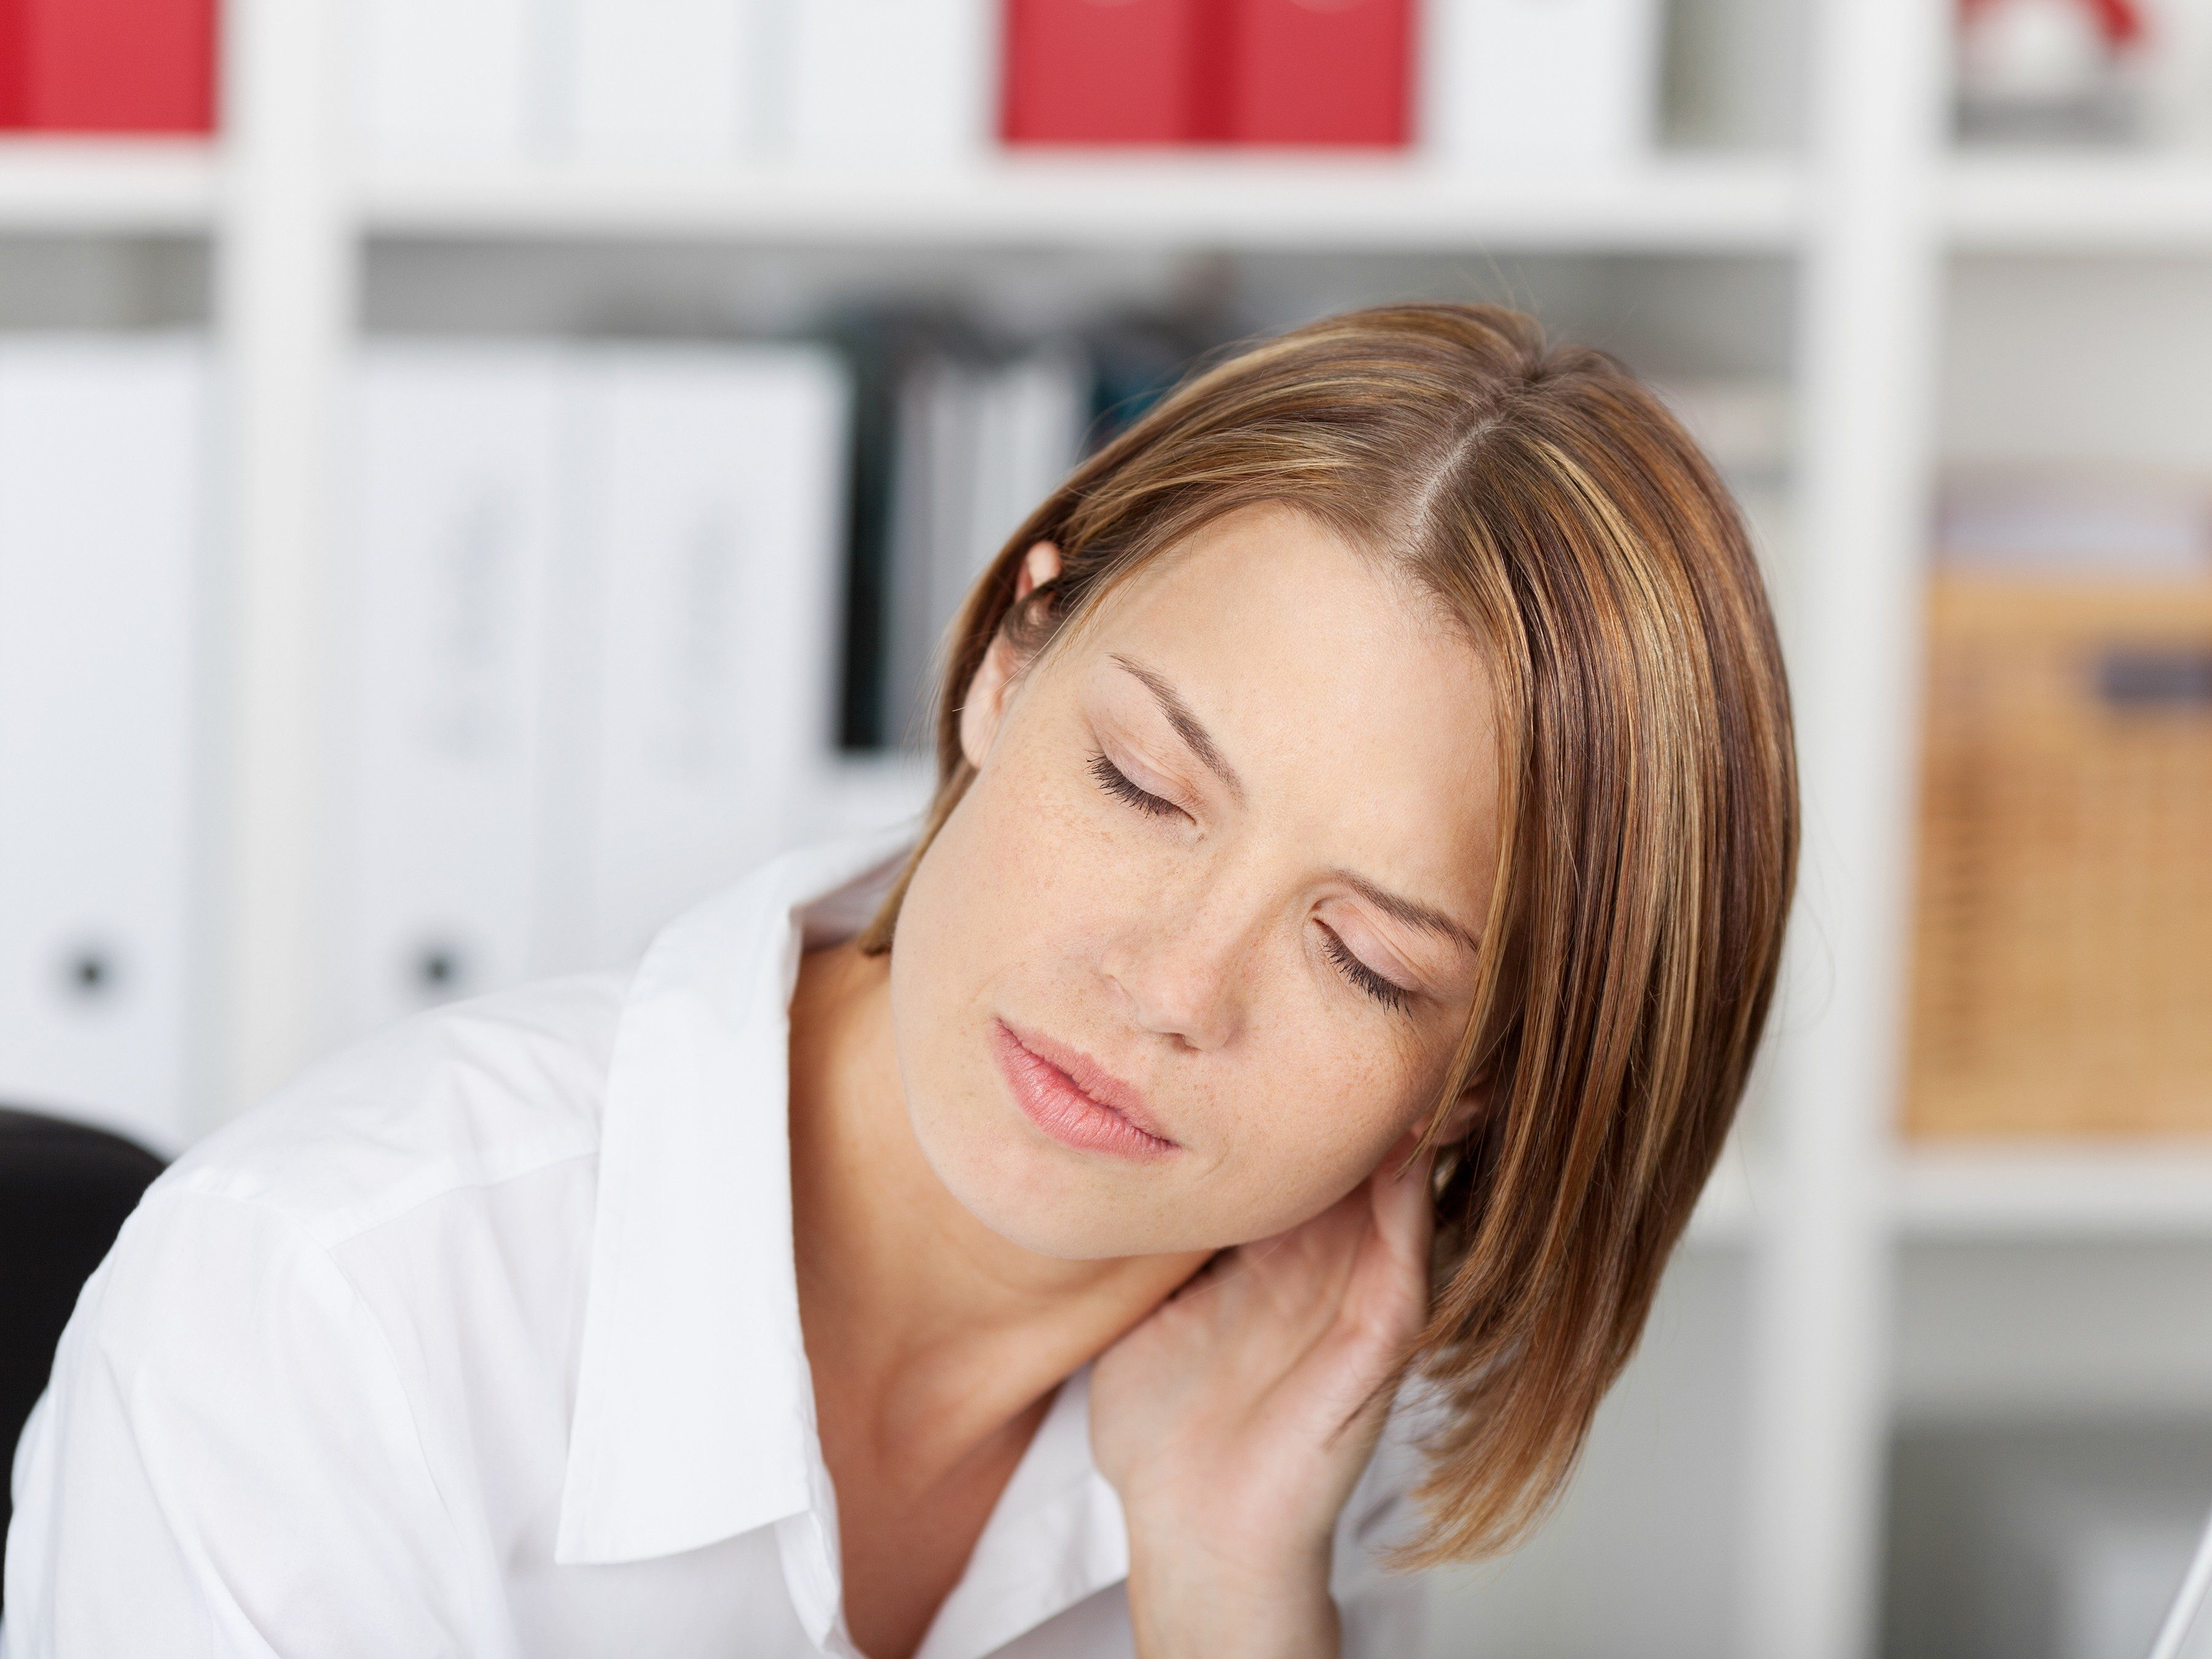 What causes a stiff neck?